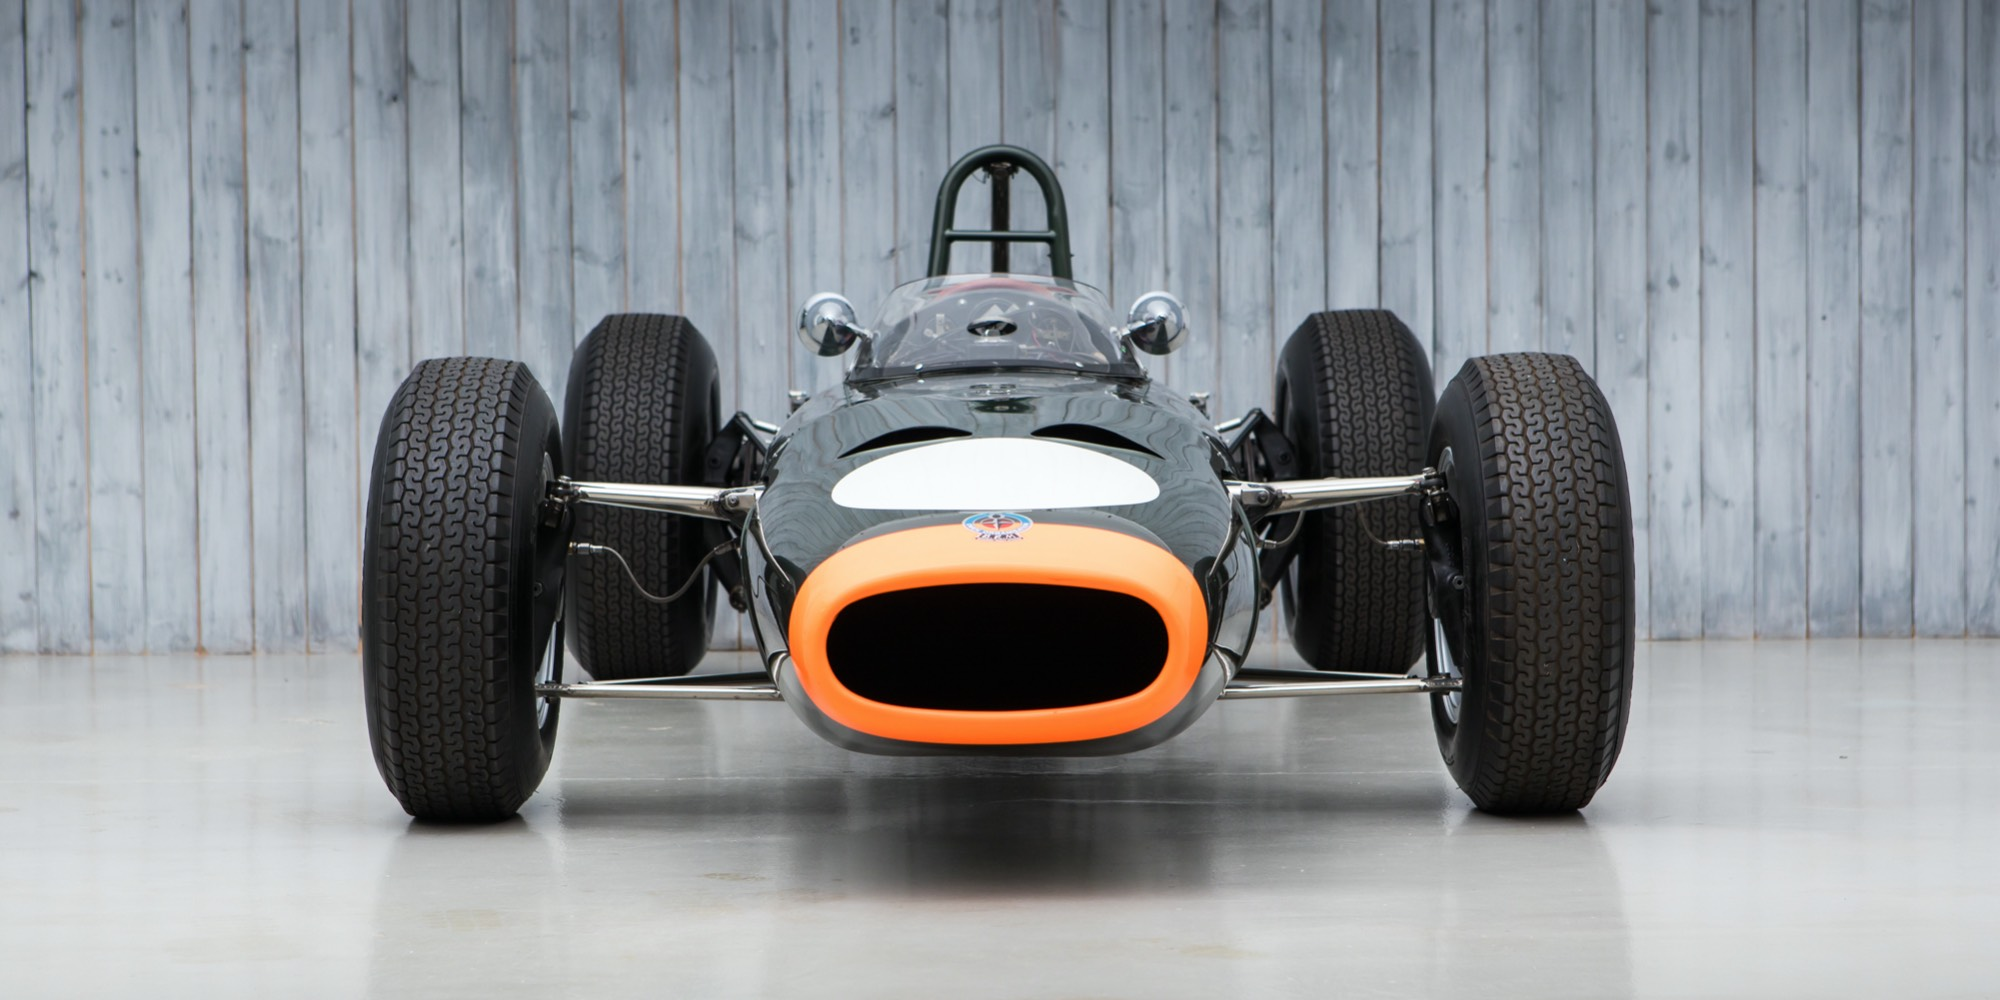 The Ex – Graham Hill, Prototype, 1.5 Litre V8 Formula 1 1964 BRM P261